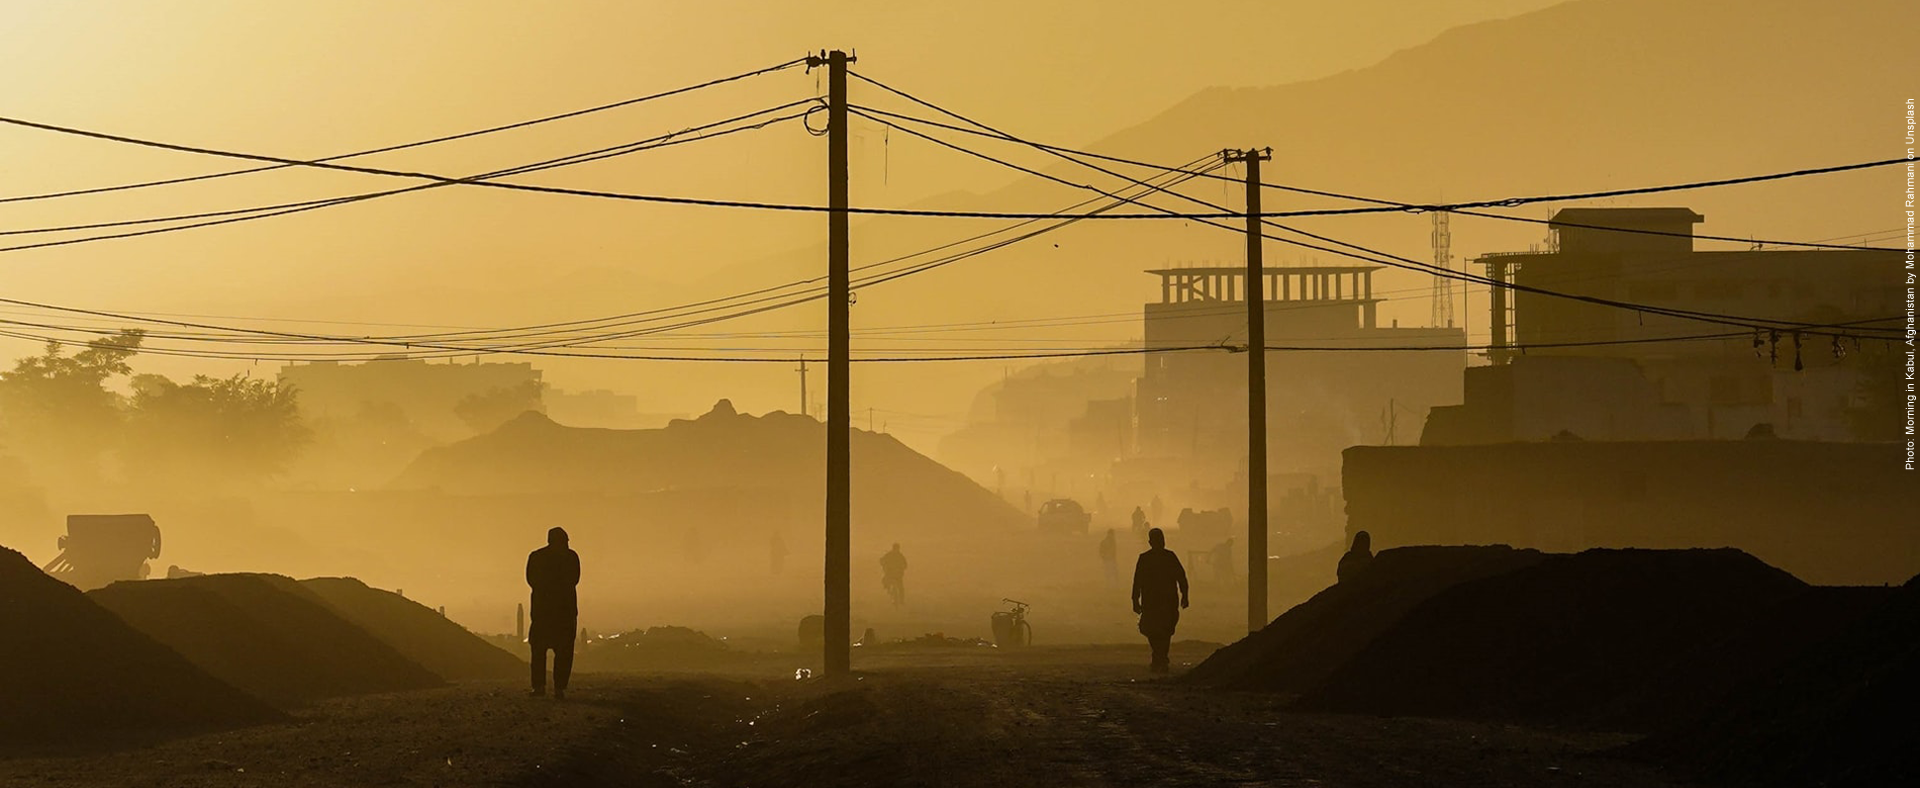 Morning in Kabul, Afghanistan by Mohammad Rahmani on Unsplash